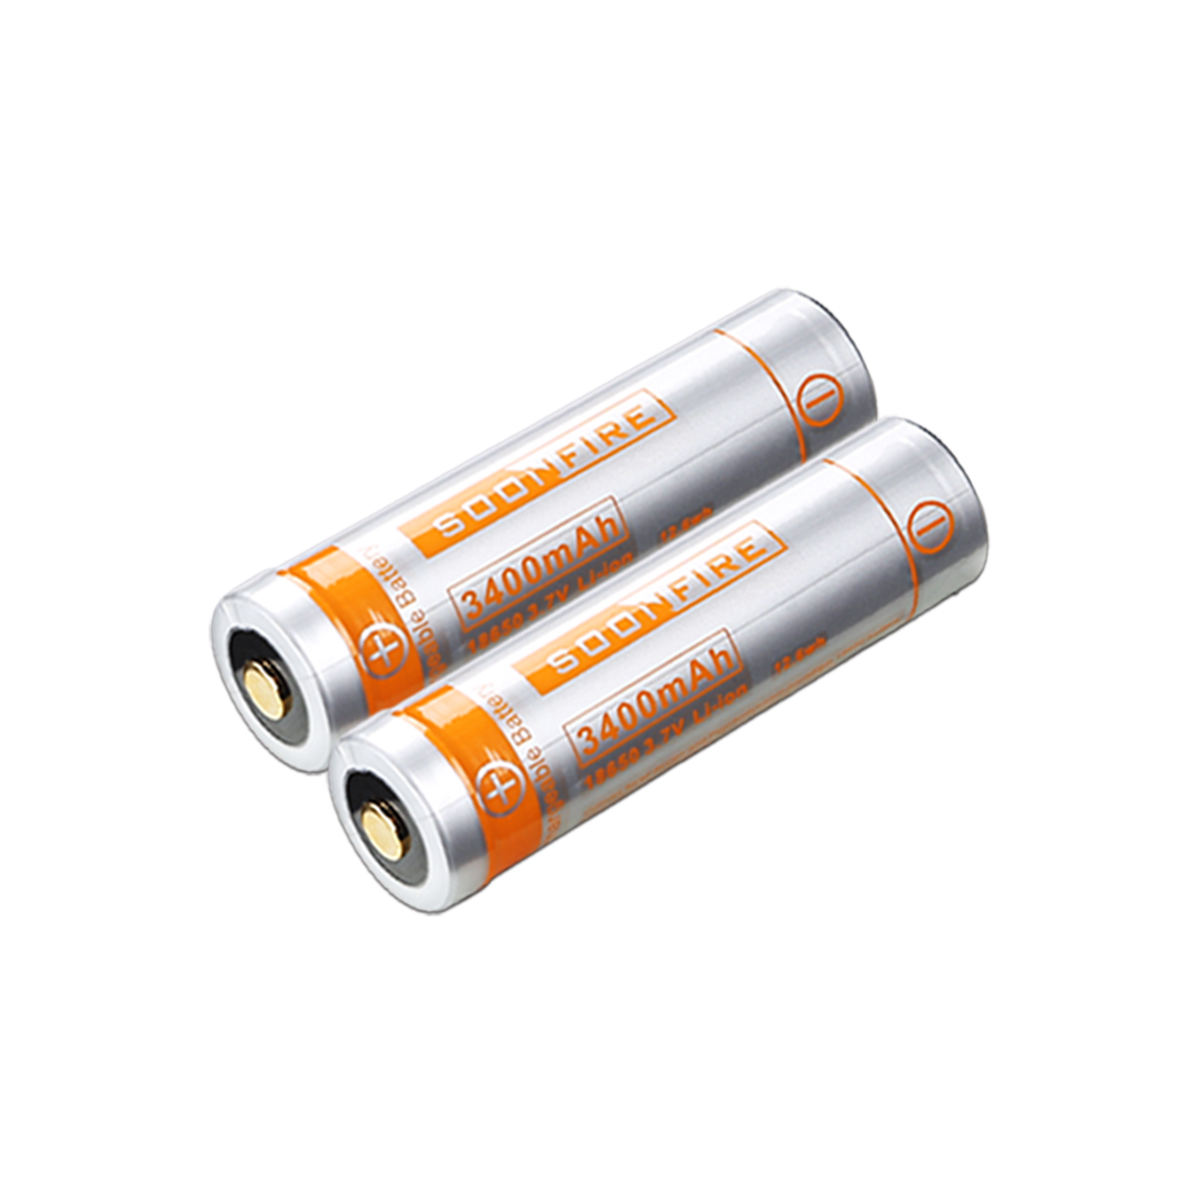 Soonfire 18650 Li-ion Recharger Batteries(two)